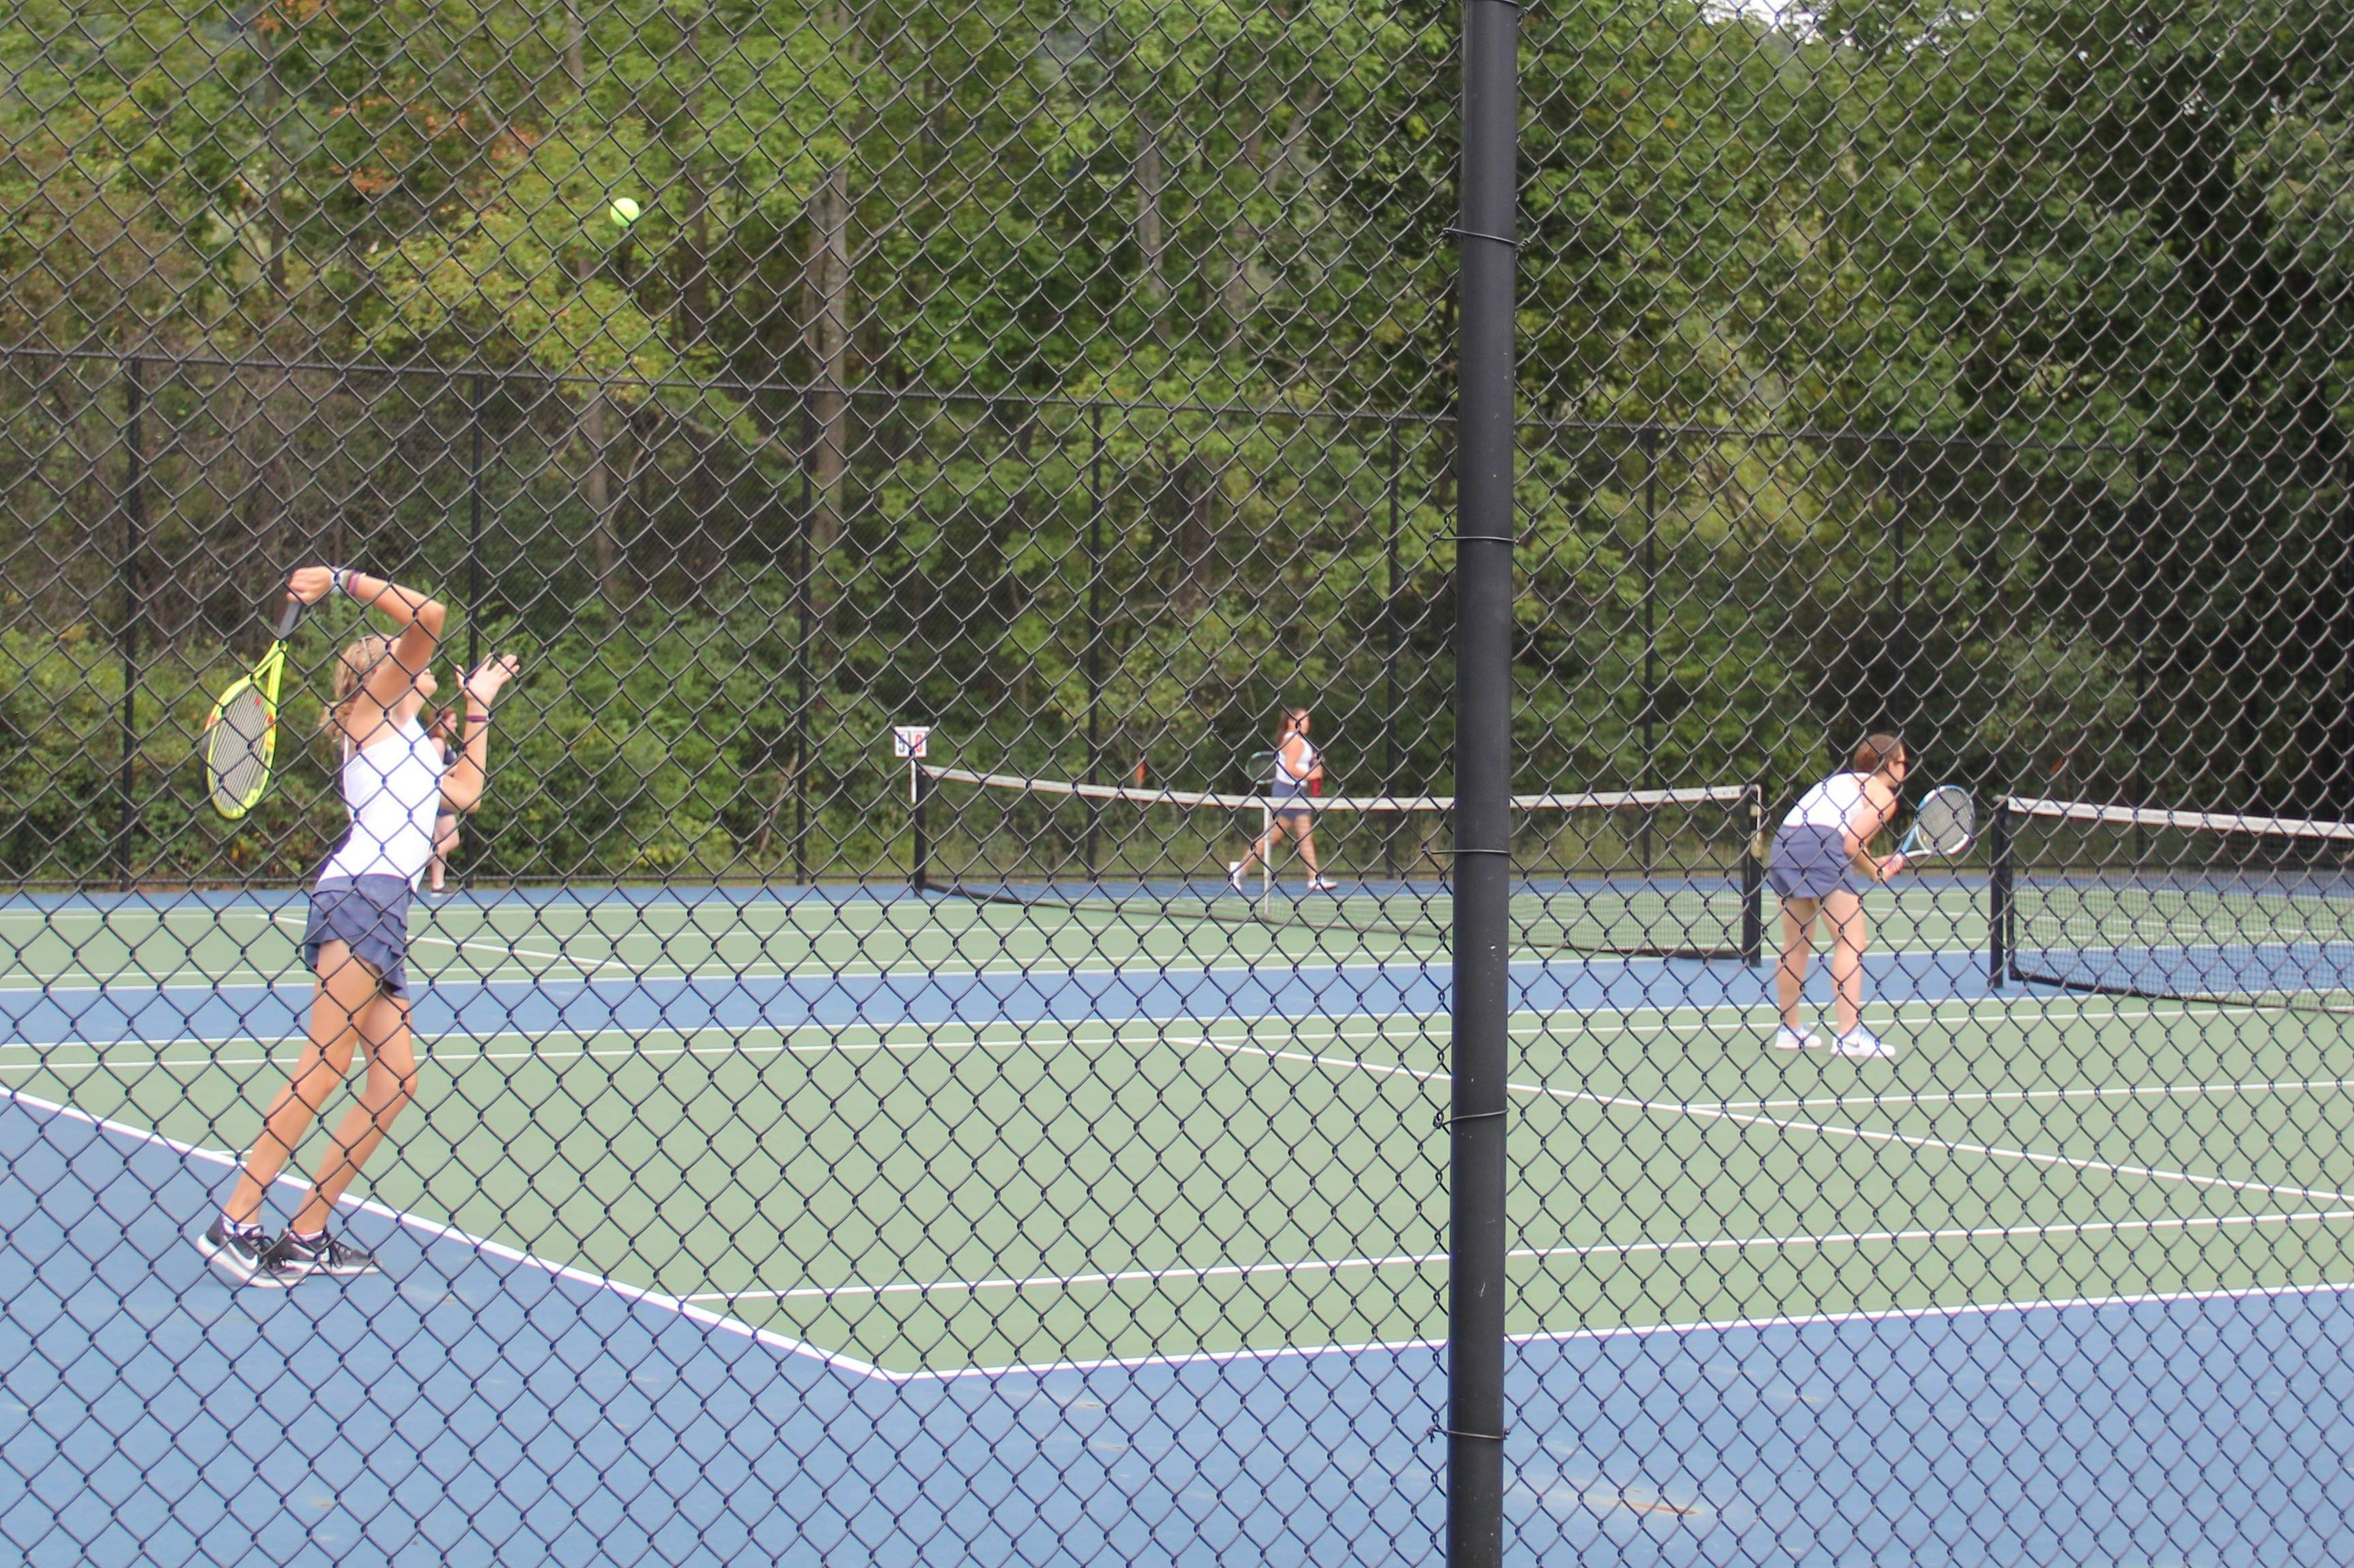 east sparta girls Sparta, nj – they are out working on the tennis courts at sparta high school the girls tennis team is looking to veteran coach jeff hughes to.